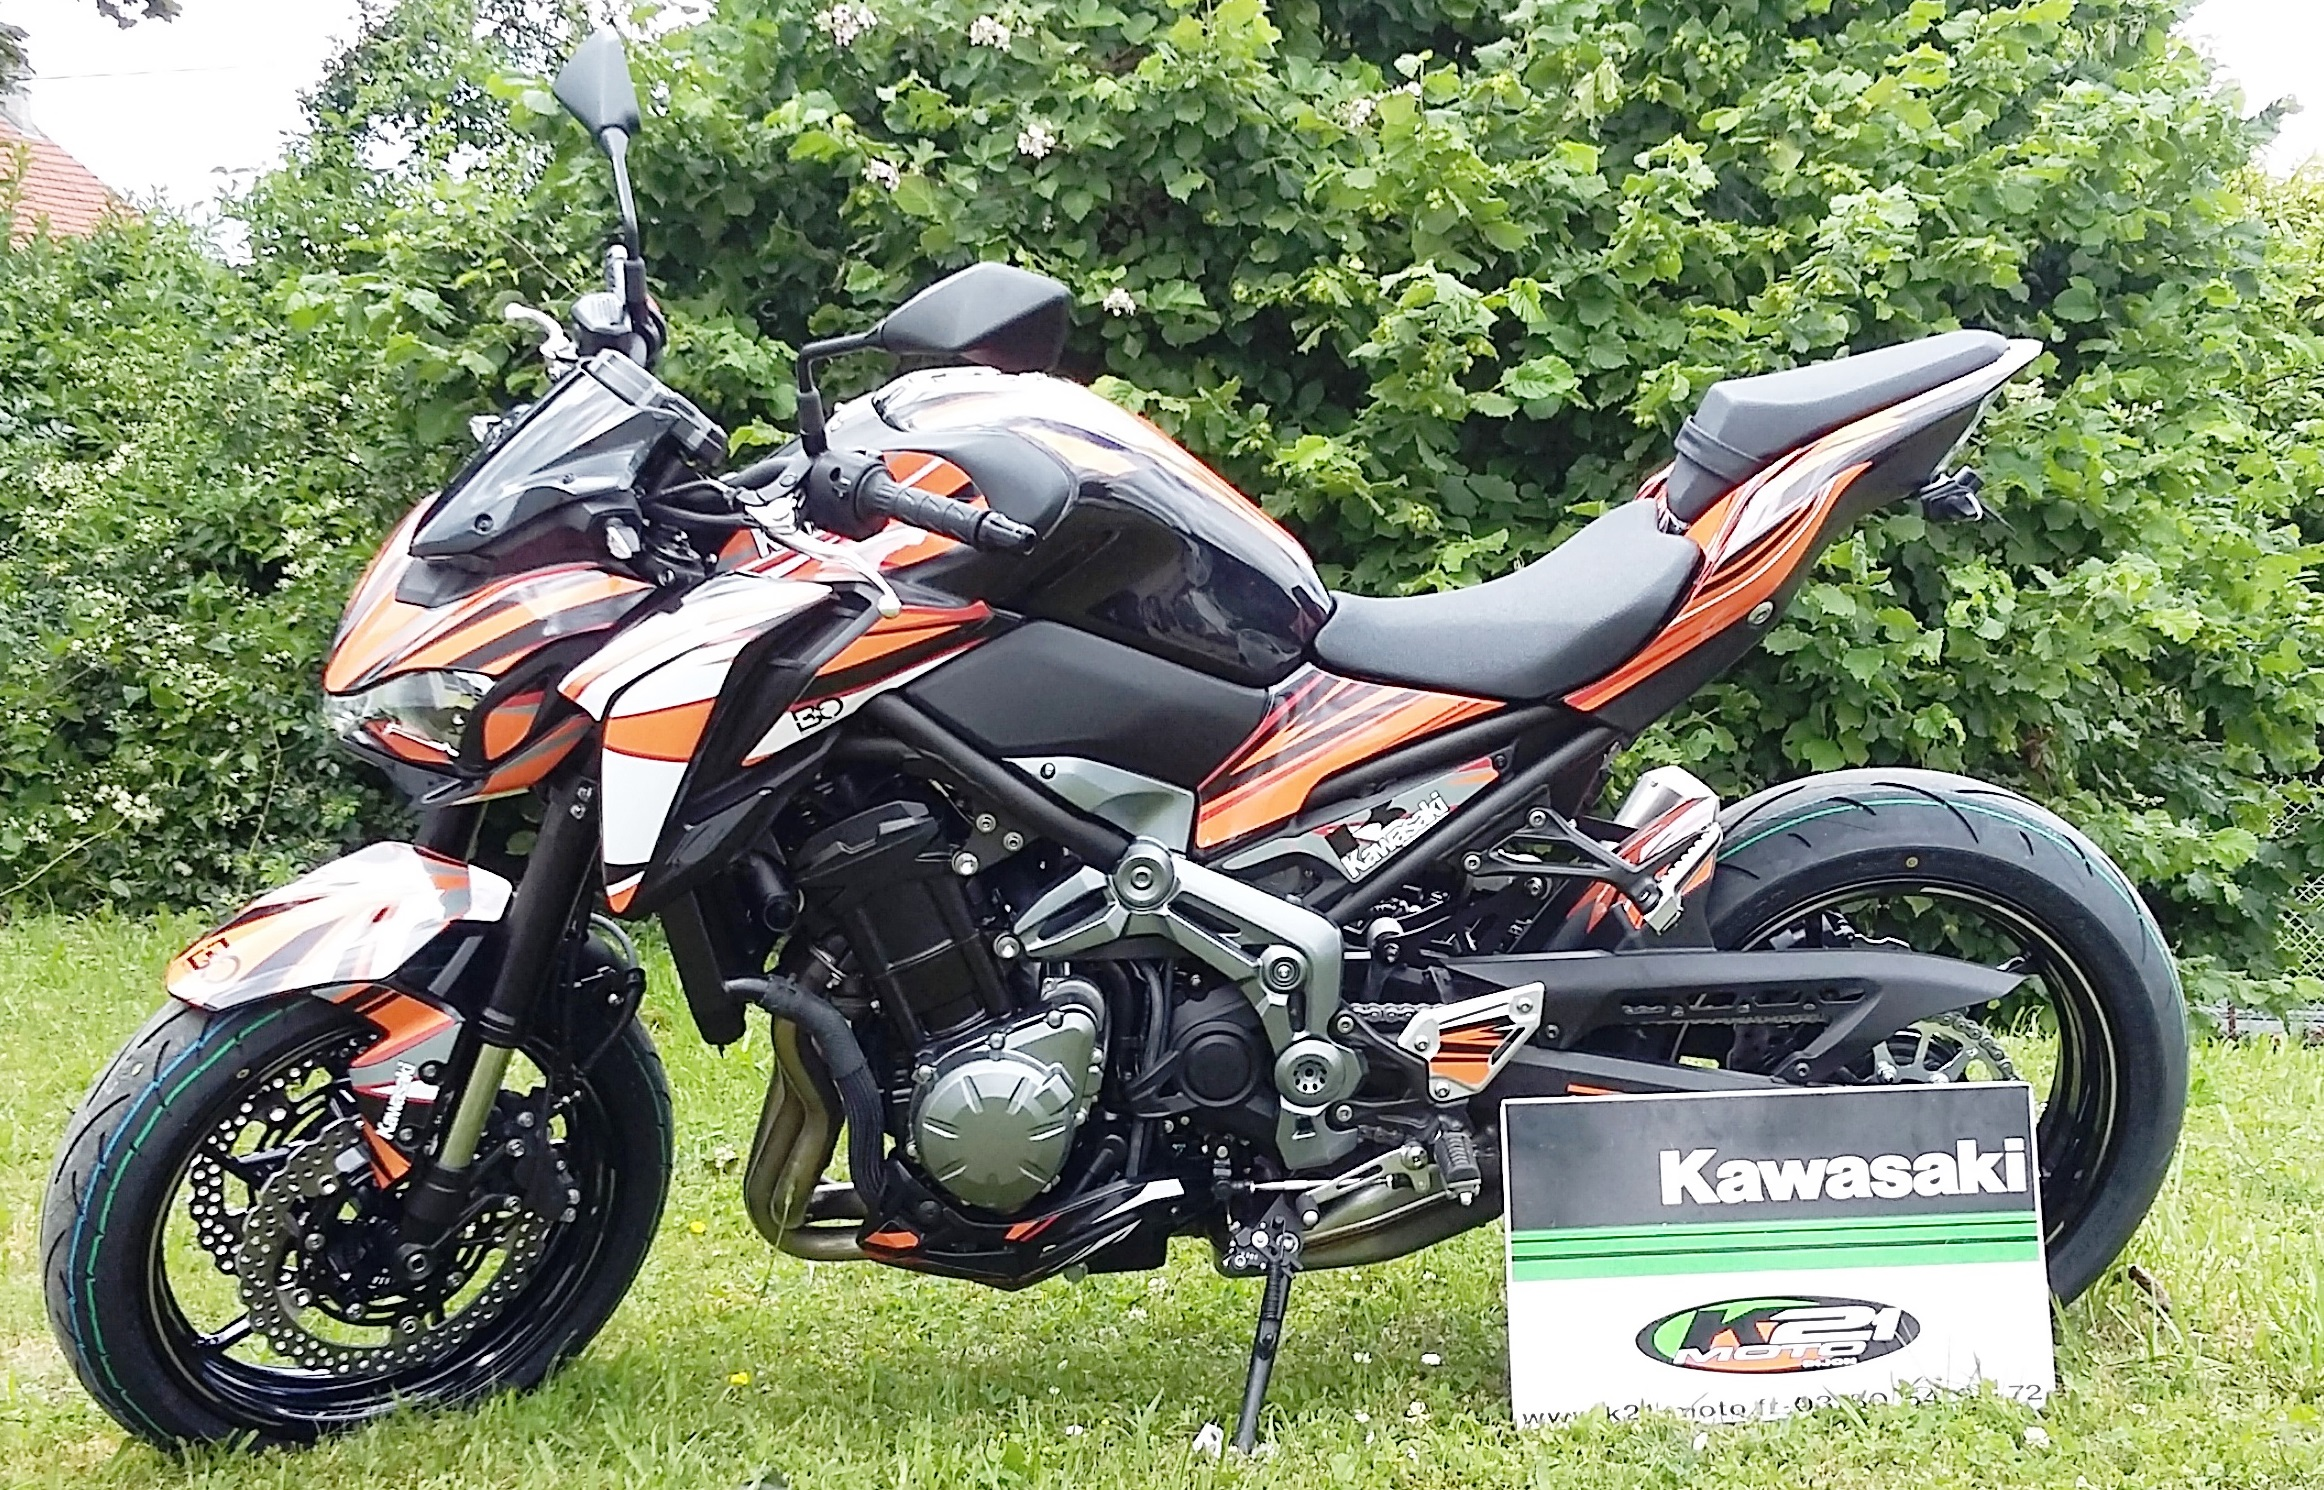 k21 concessionnaire kawasaki ktm et kymco chenove 21300. Black Bedroom Furniture Sets. Home Design Ideas